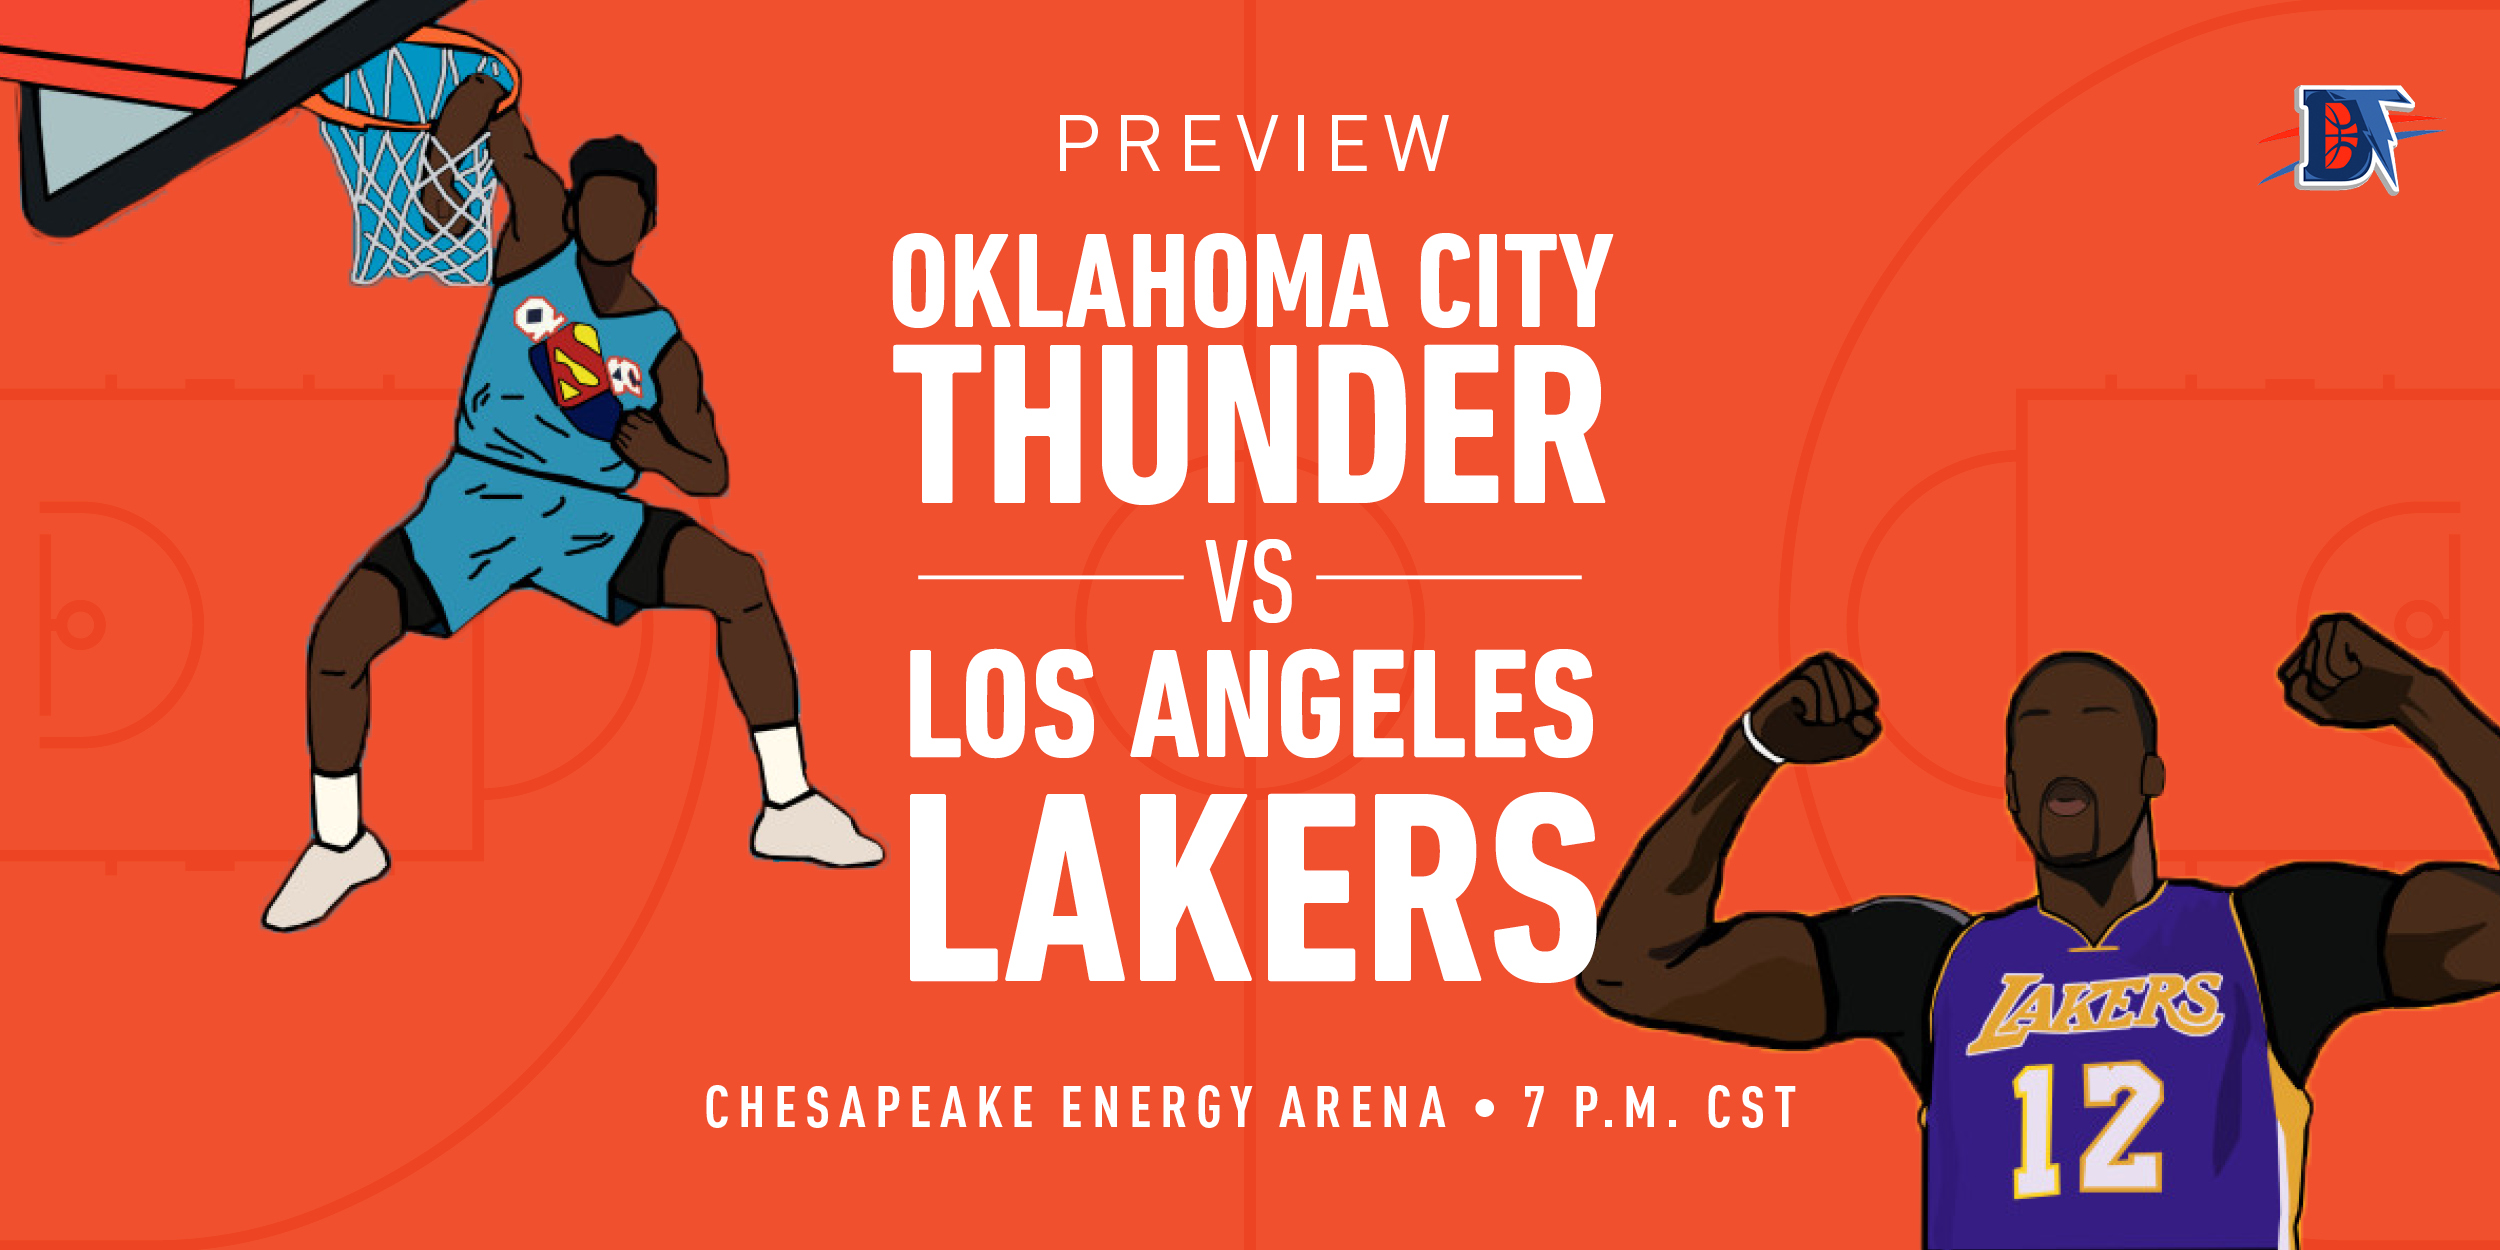 Game 39 Live Thread: Thunder (22-16) vs. Lakers (31-7)